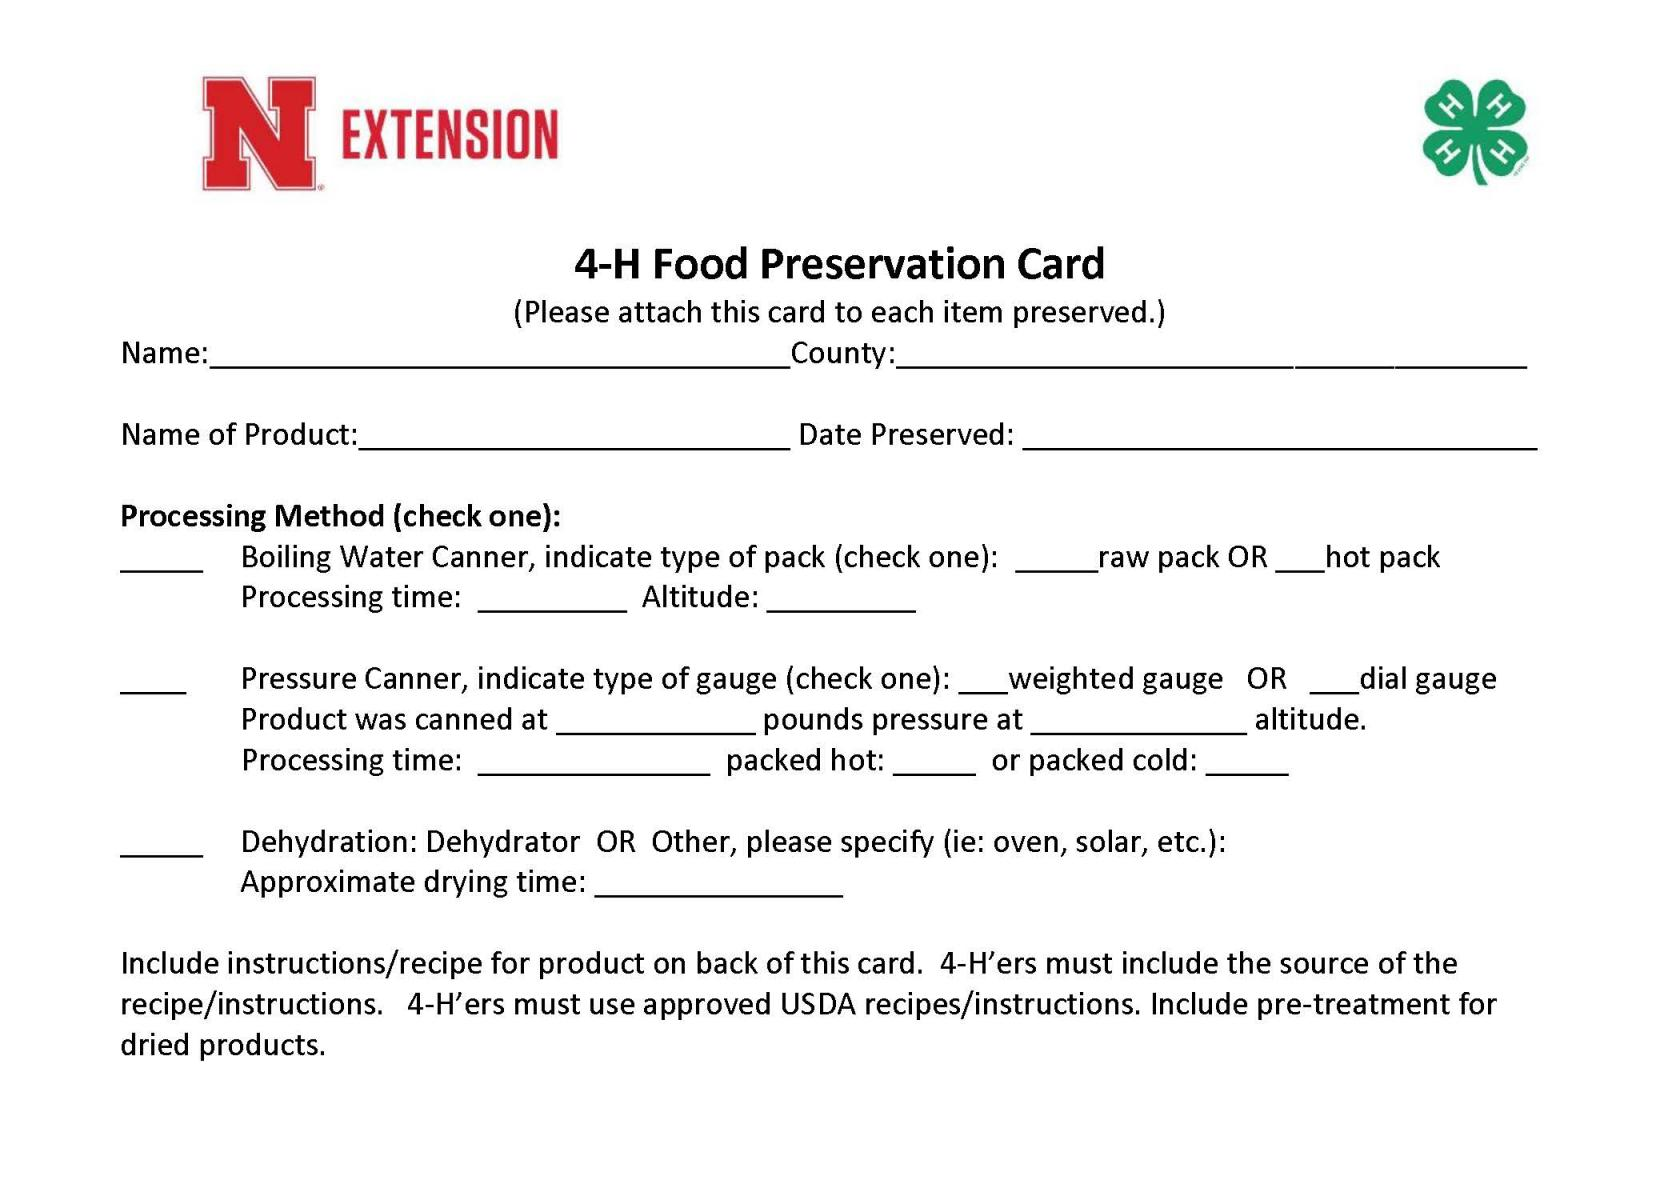 Food preservation information cards nebraska extension 4 h food preservation cardpdf fillable forumfinder Images